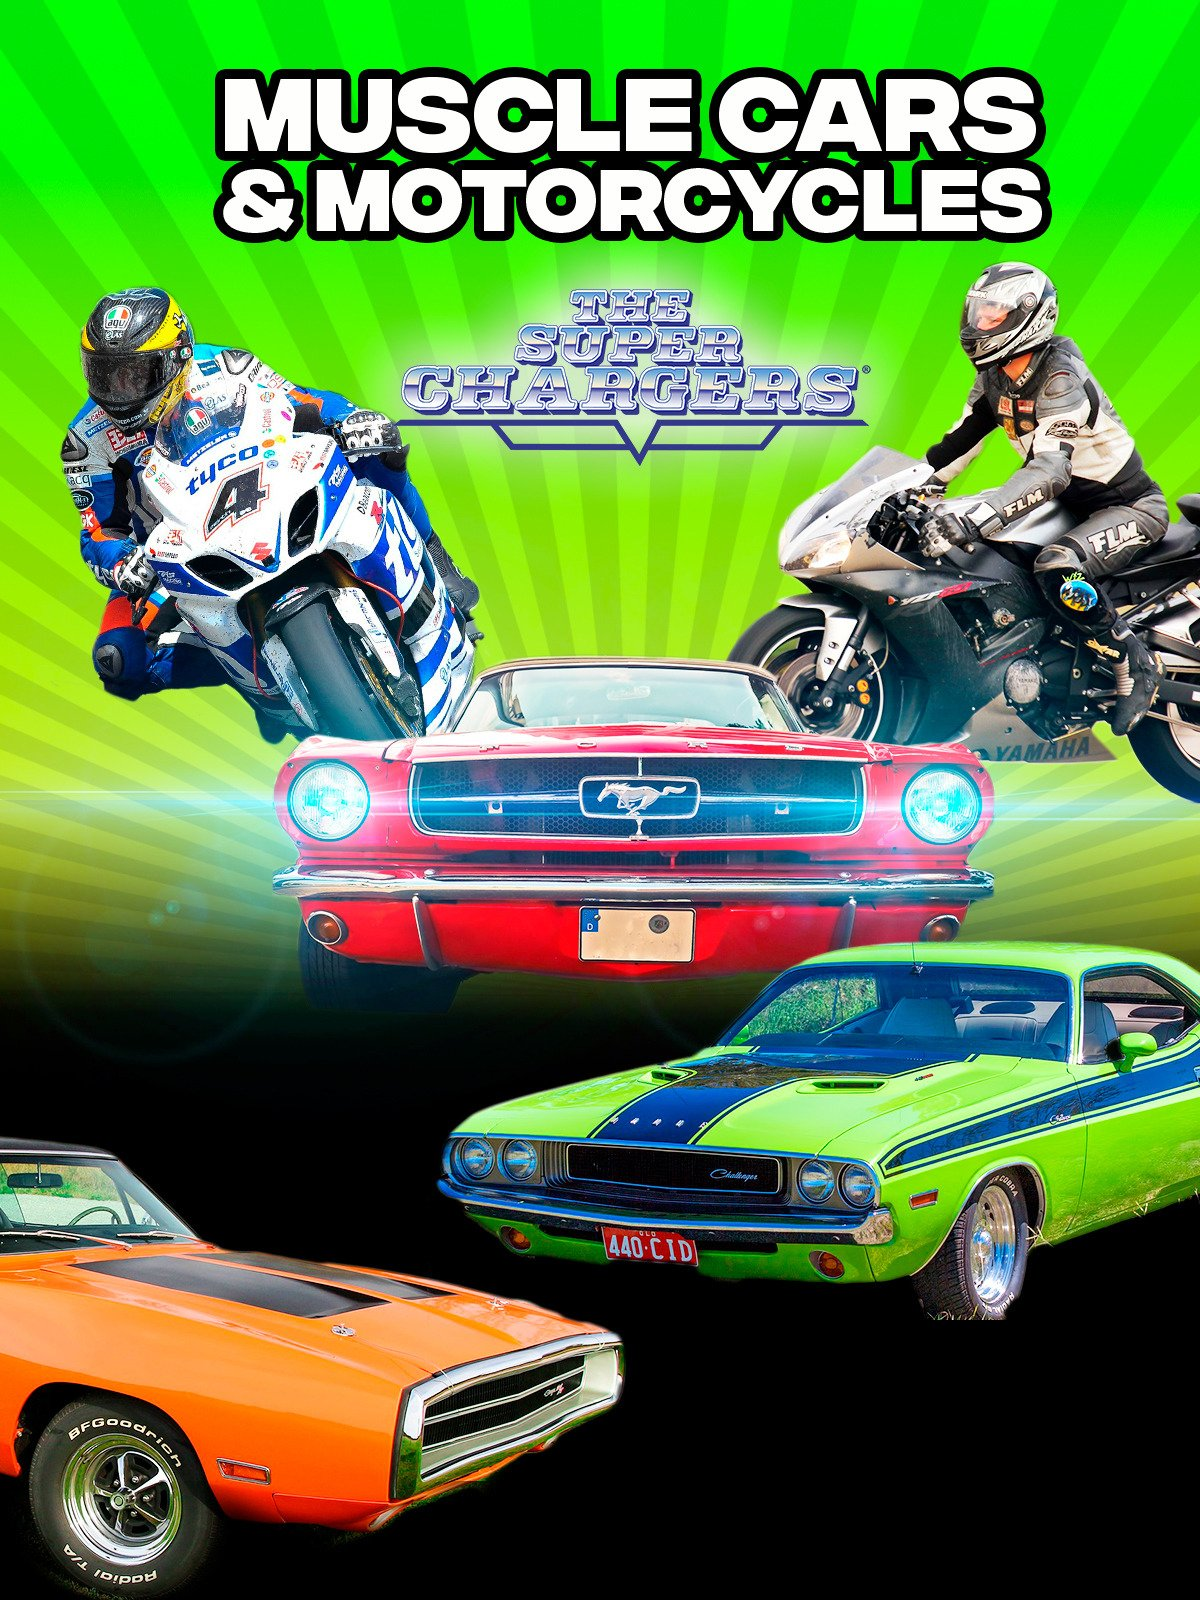 Muscle Cars & Motorcycles